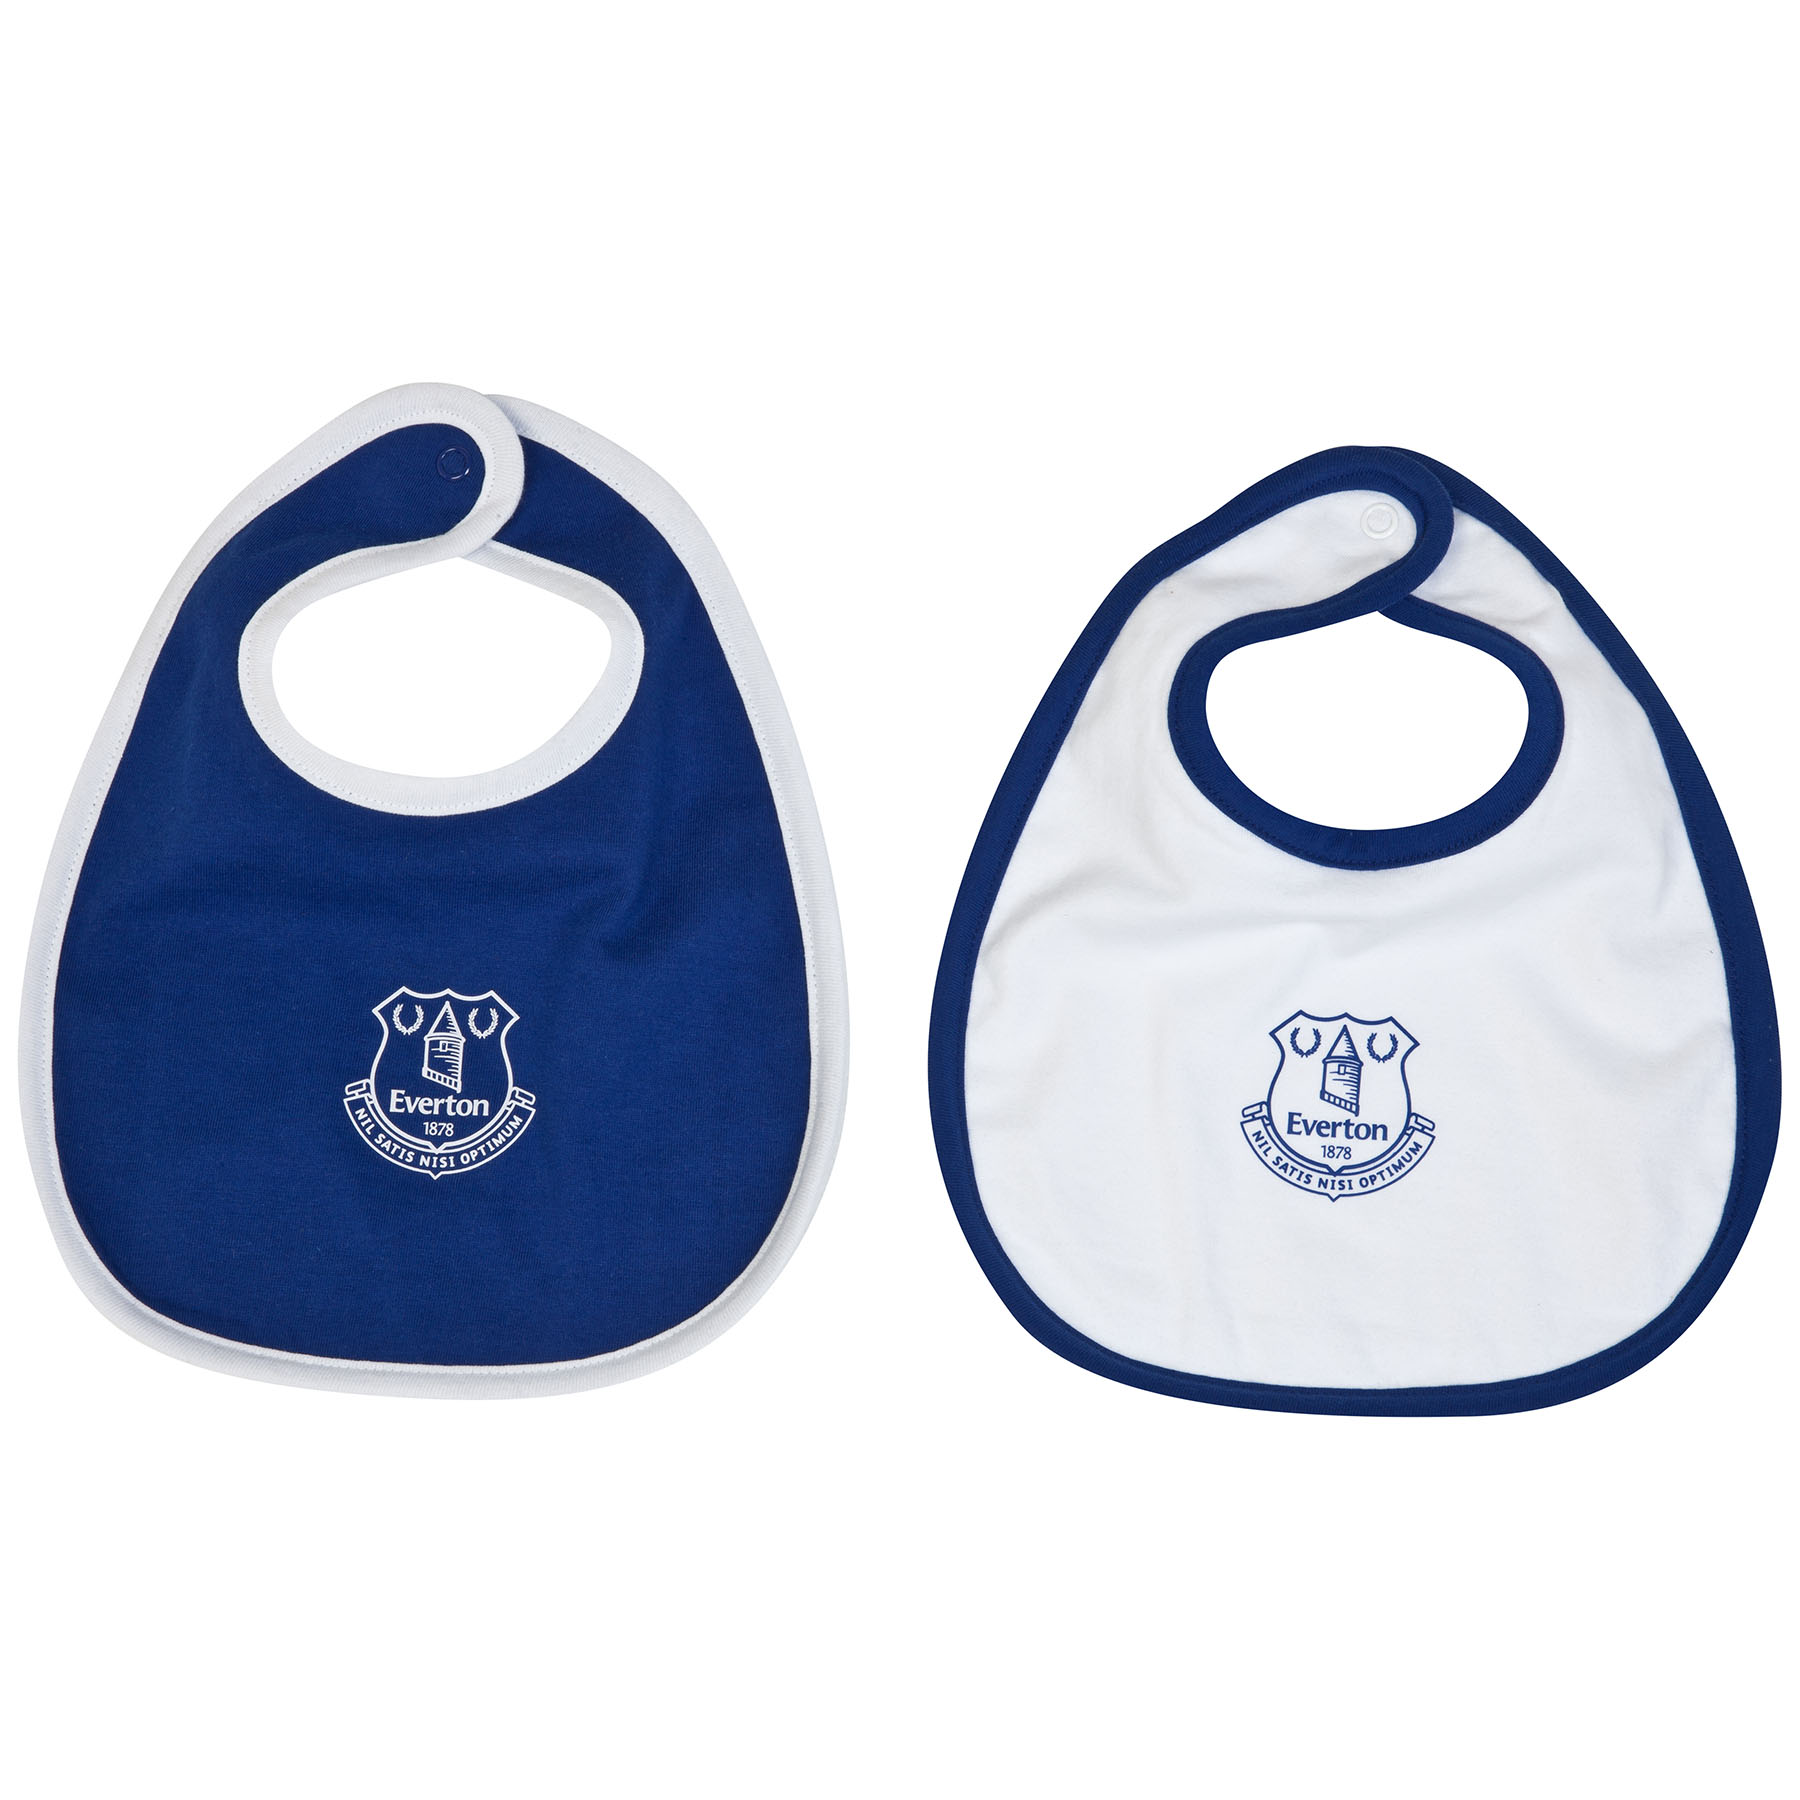 Everton 14/15 Kit Bibs